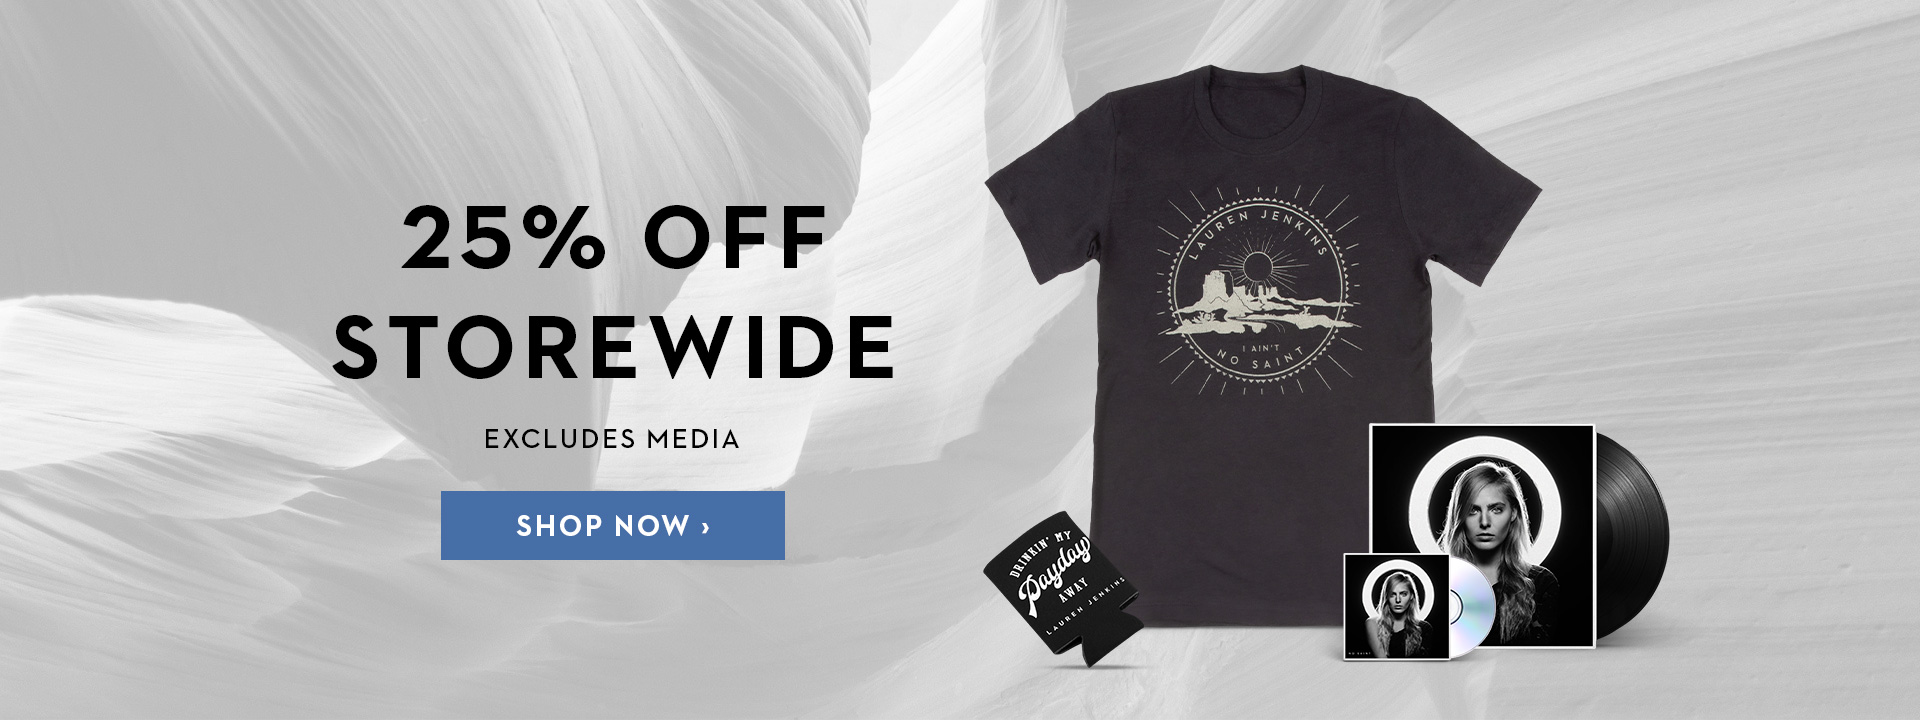 Summer 2020 Sale - 25% Off Storewide - Excludes Media